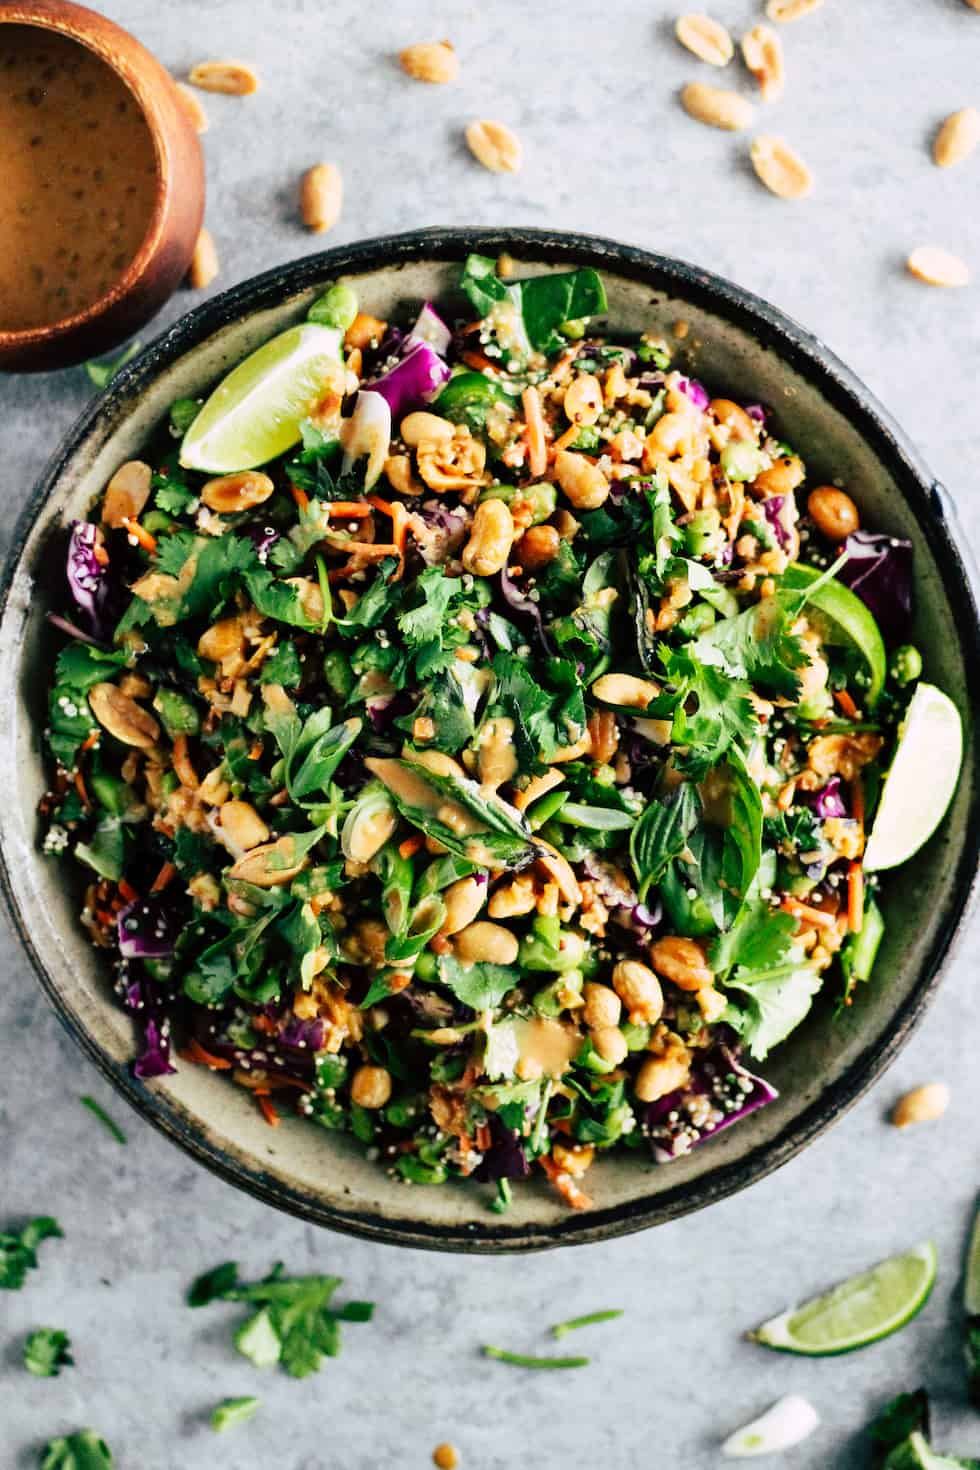 Spicy Edamame Crunch Salad in ceramic bowl with peanuts and fresh herbs around edges.